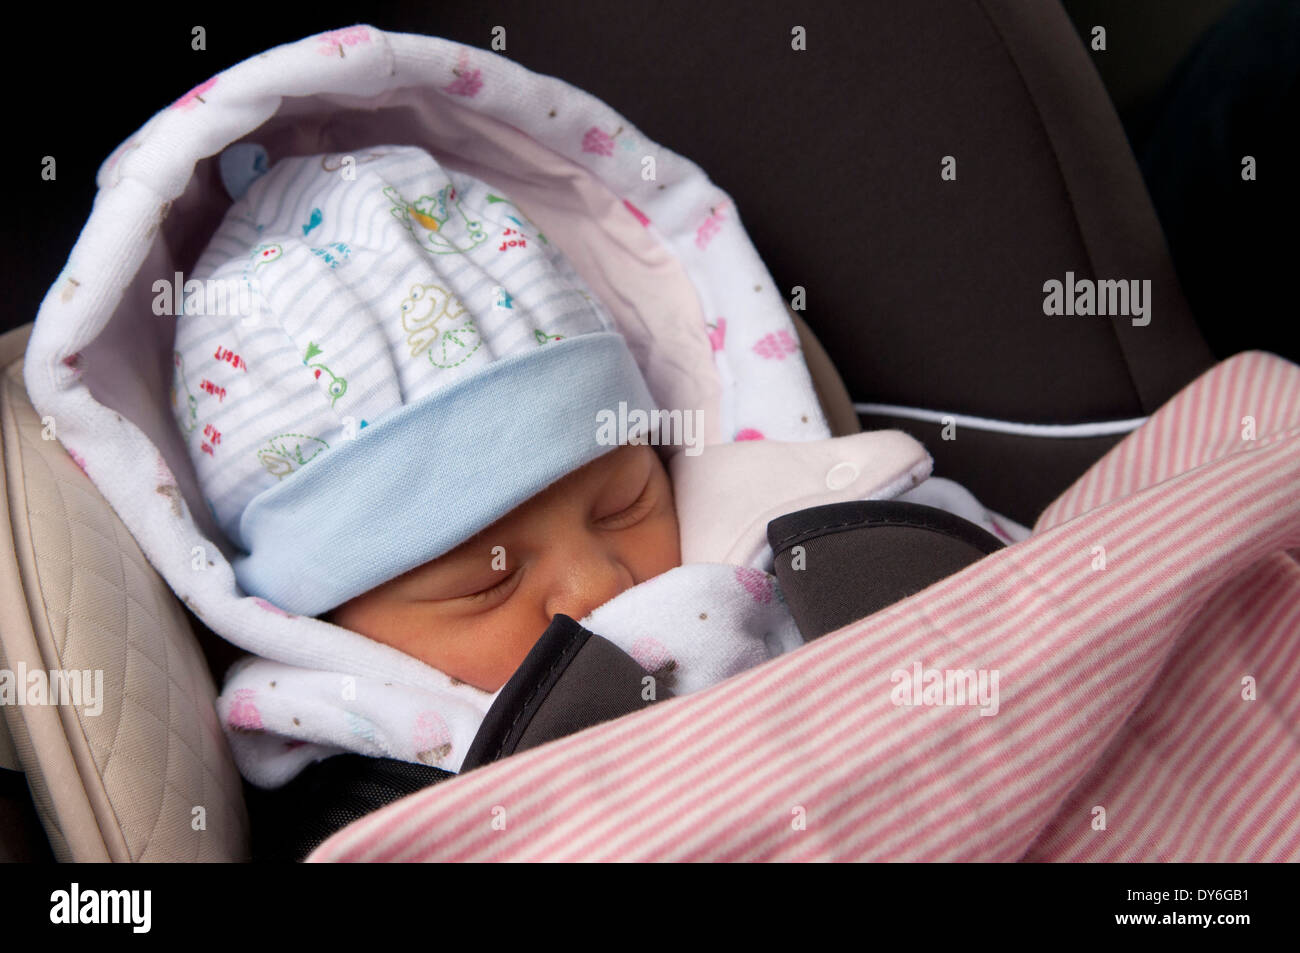 Baby Girl Infant Car Seats: Newborn Baby Girl, A Day Old, Asleep In Car Seat, Leaving